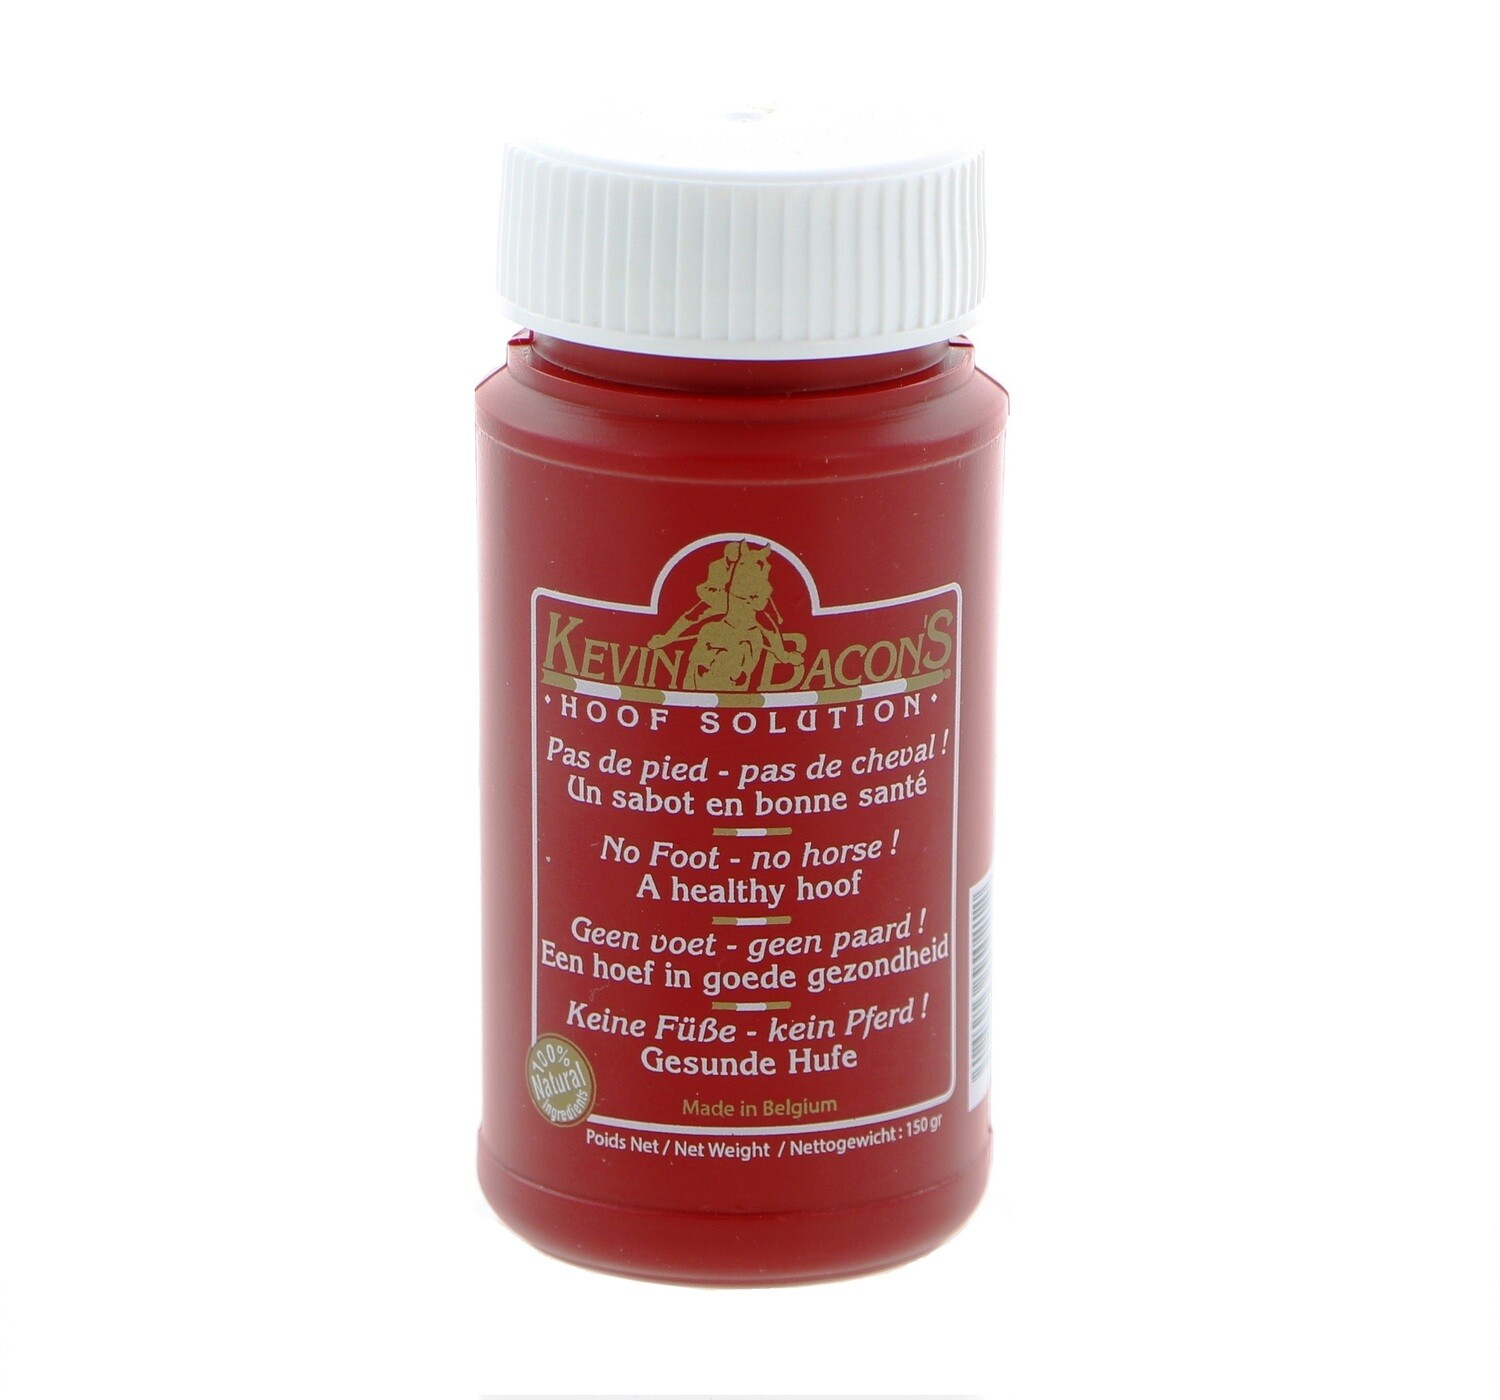 HoofSolution 150ml - Kevin Bacons